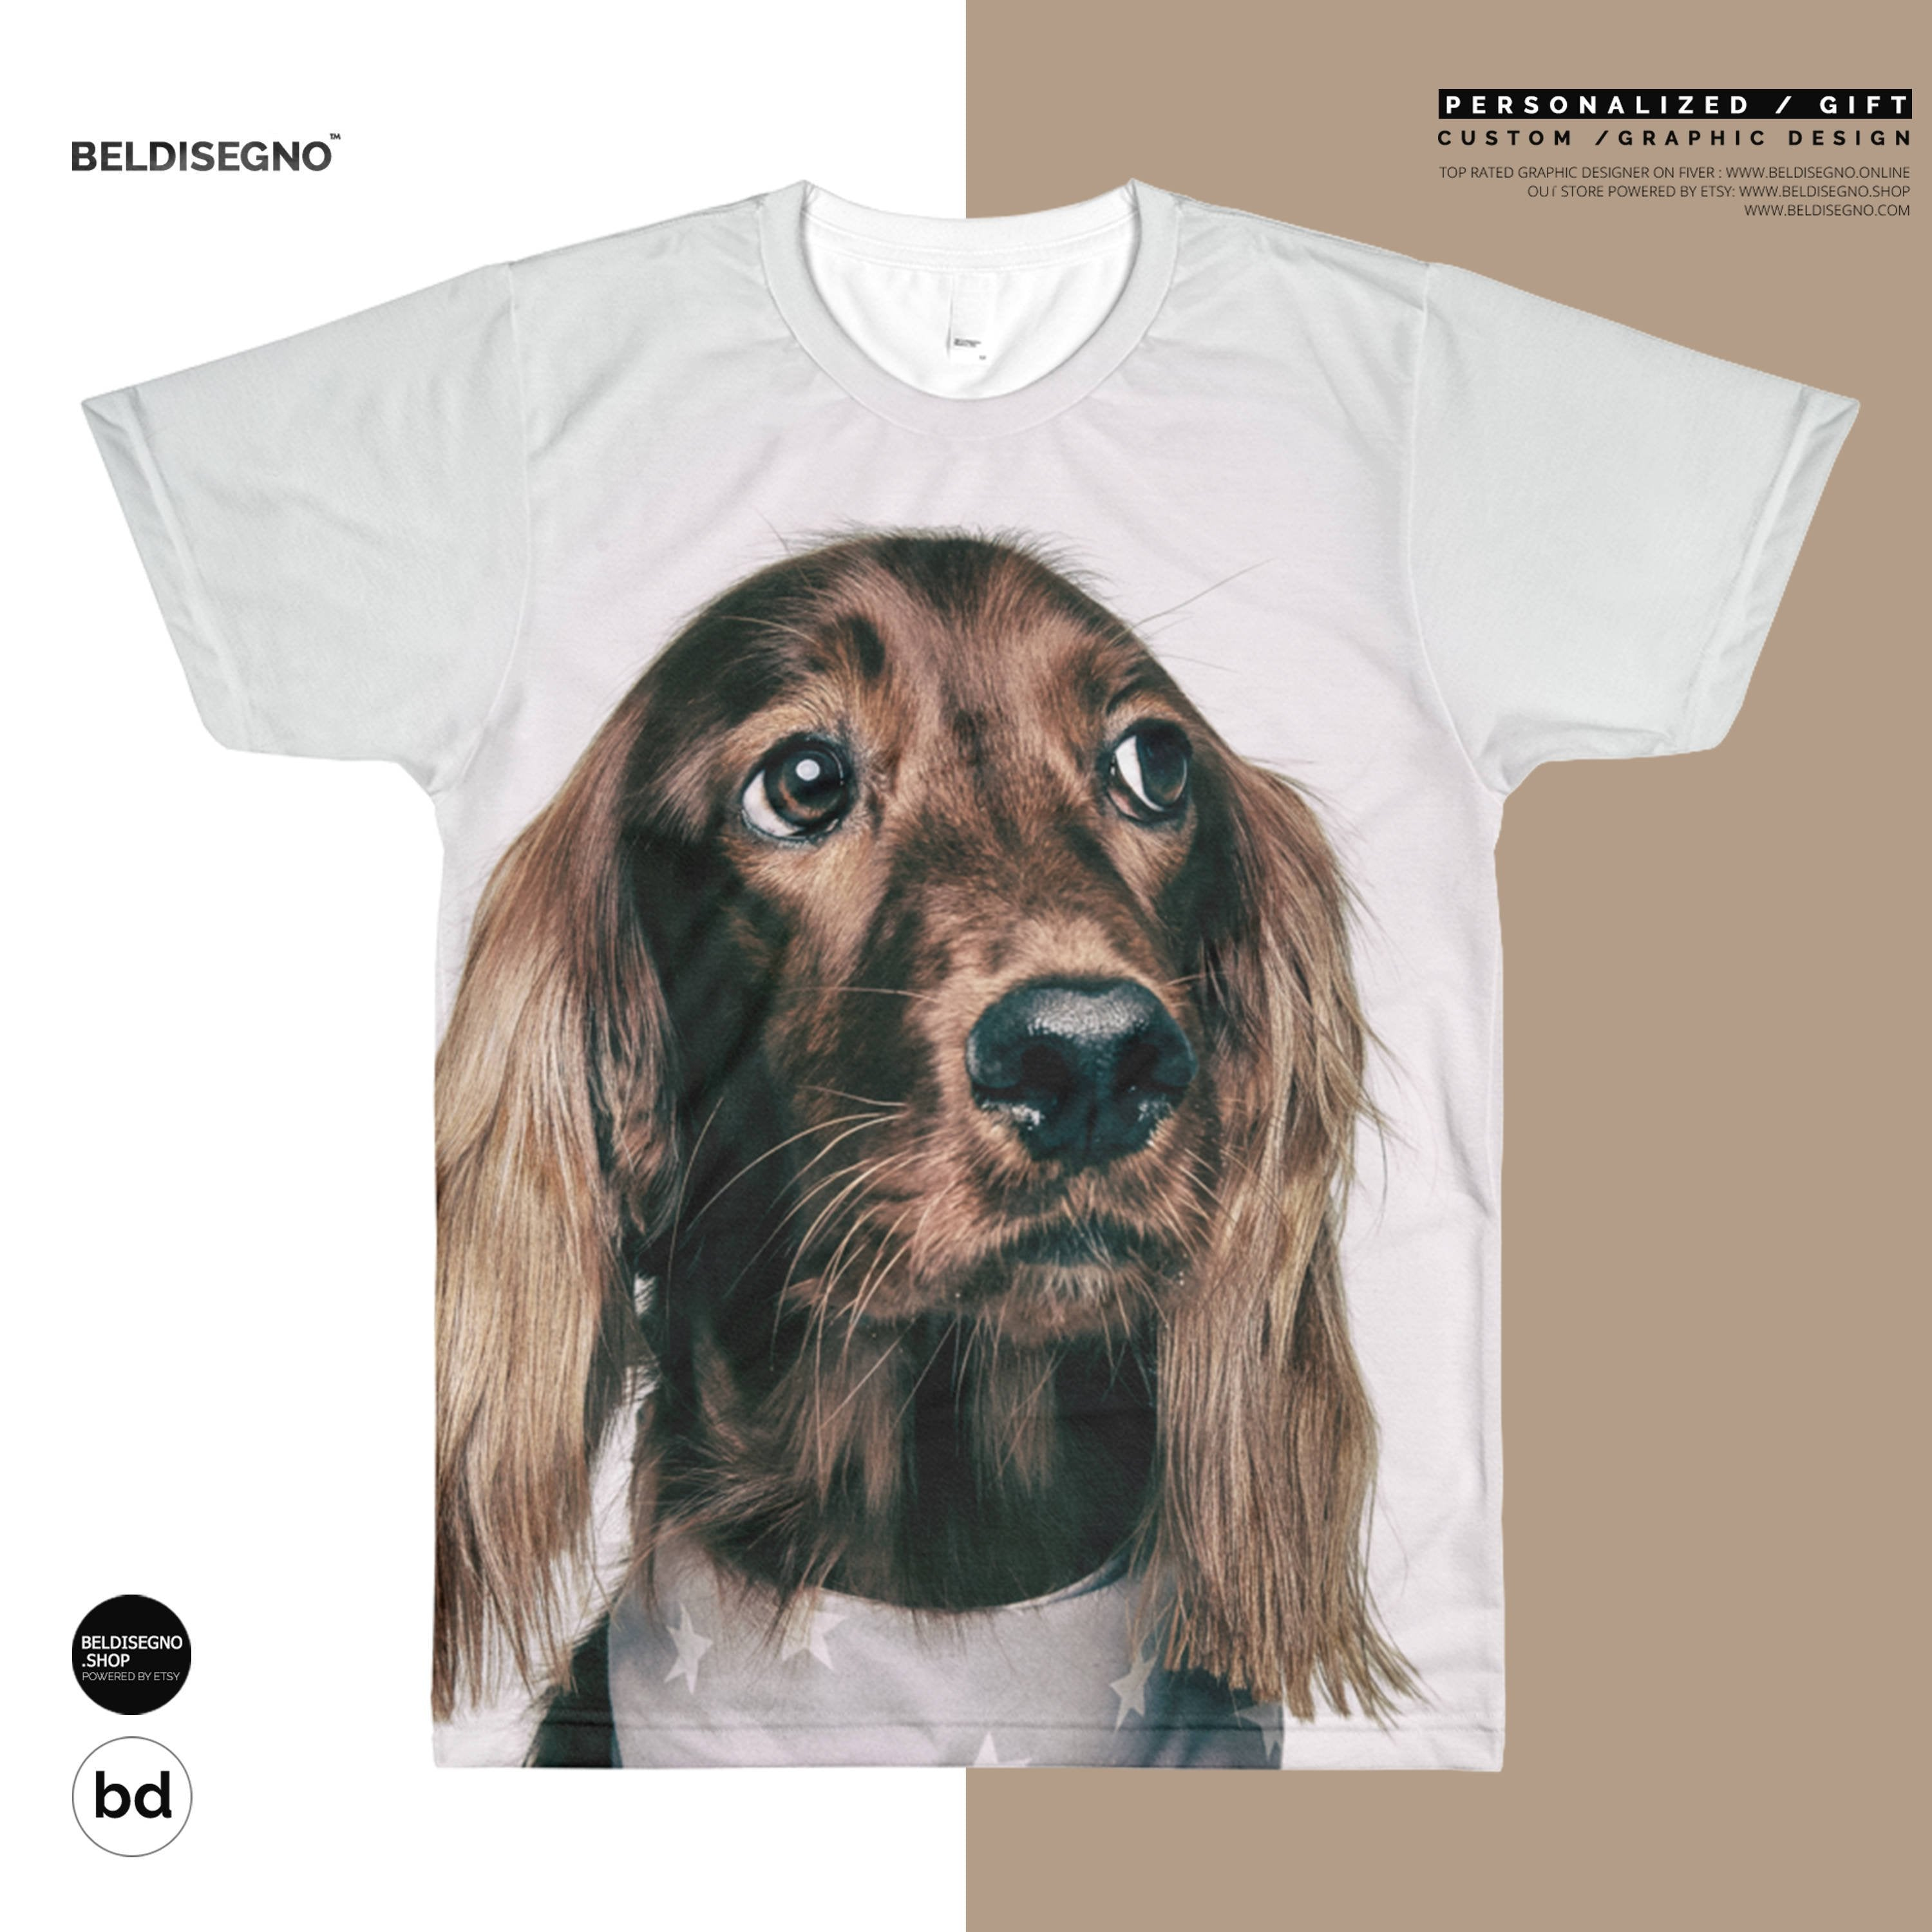 Custom All-Over Cut & Sew Men's T-shirt -Personalized Printed T-Shirt - Custom Sublimation T-Shirt - custom dog picture shirt Size: XS, S, M, L, XL, 2X